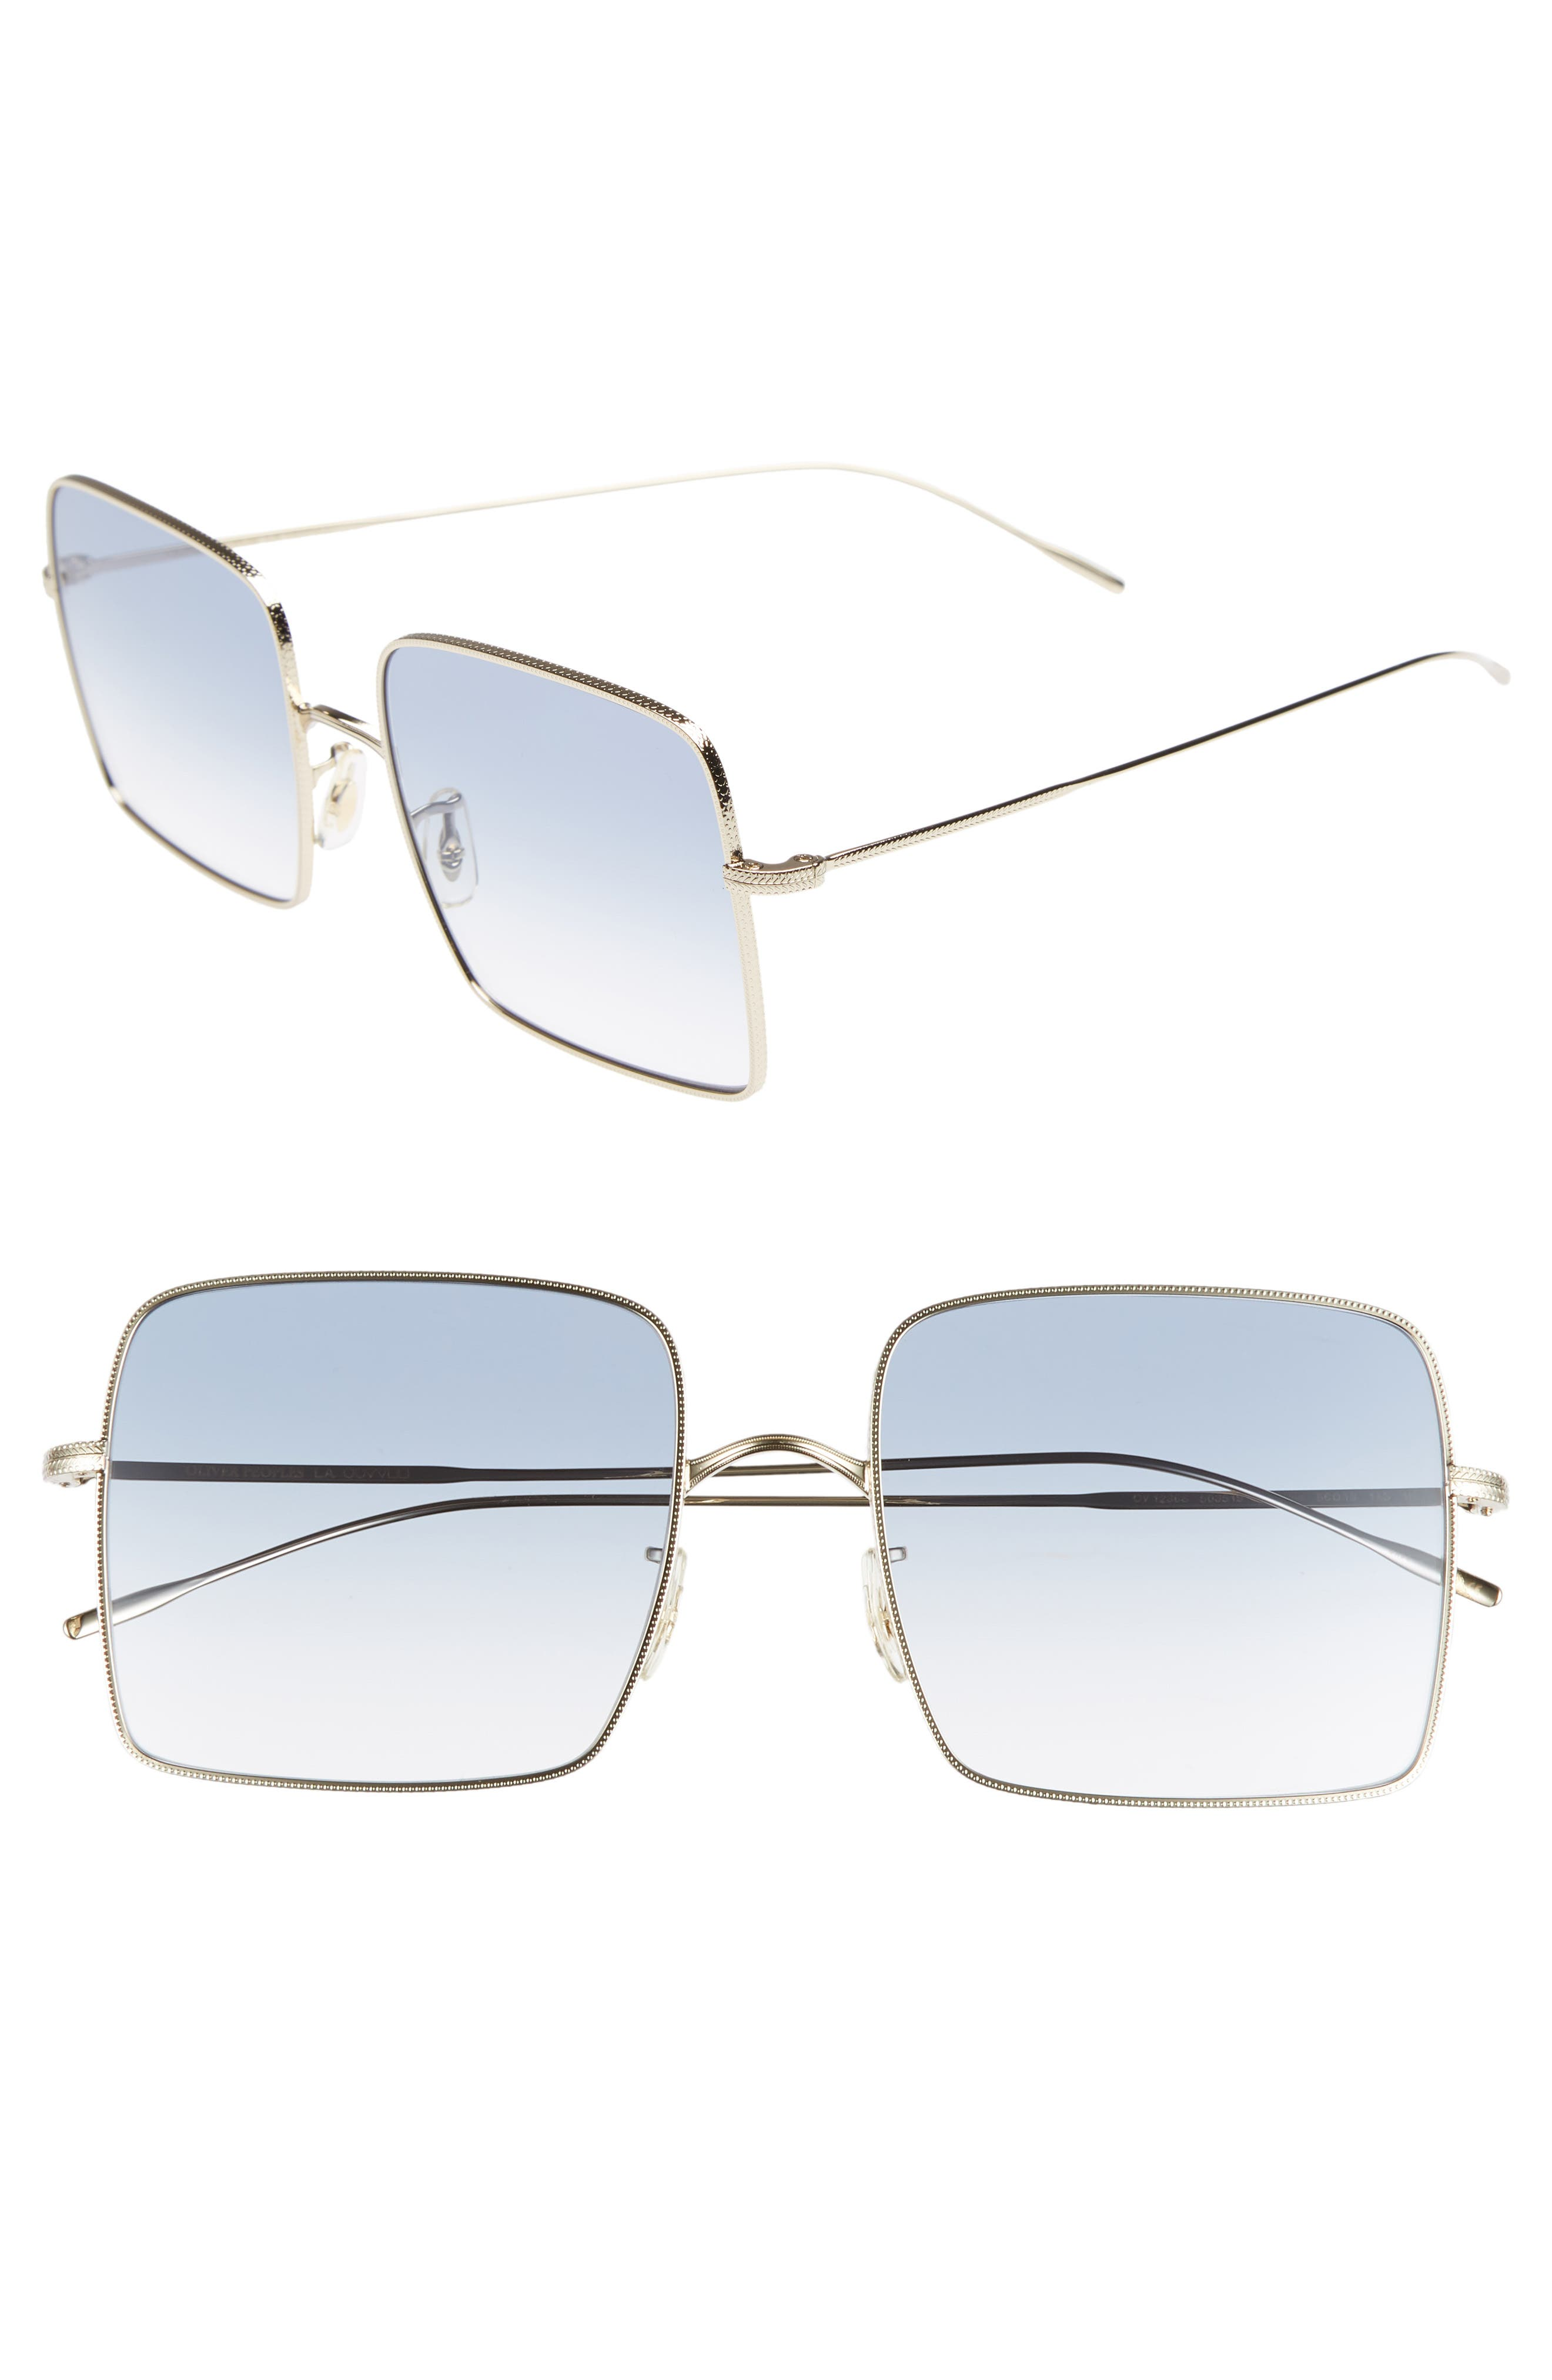 Rassine 56mm Sunglasses,                         Main,                         color, SOFT GOLD BLUE